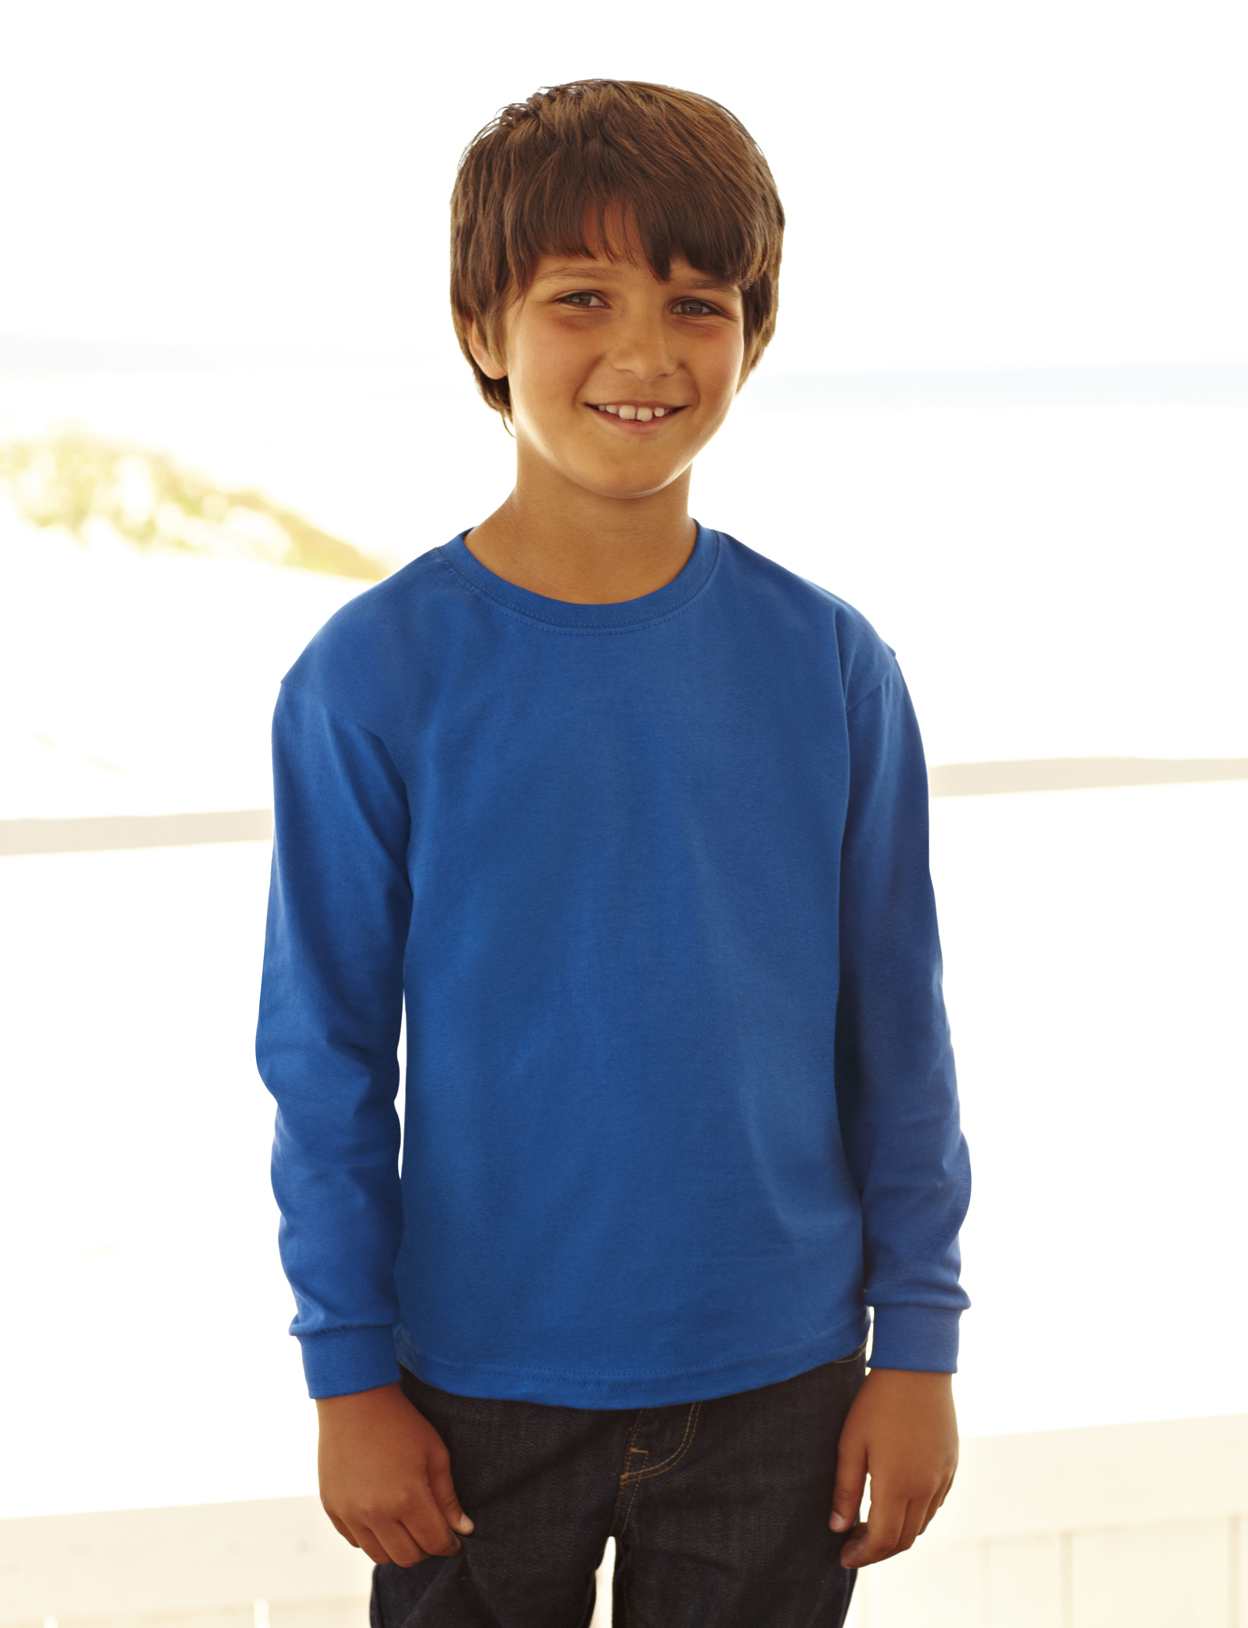 274d90a2f Fruit of the Loom Kids Long Sleeve Valueweight T-G.S.Mahal & Co. Ltd